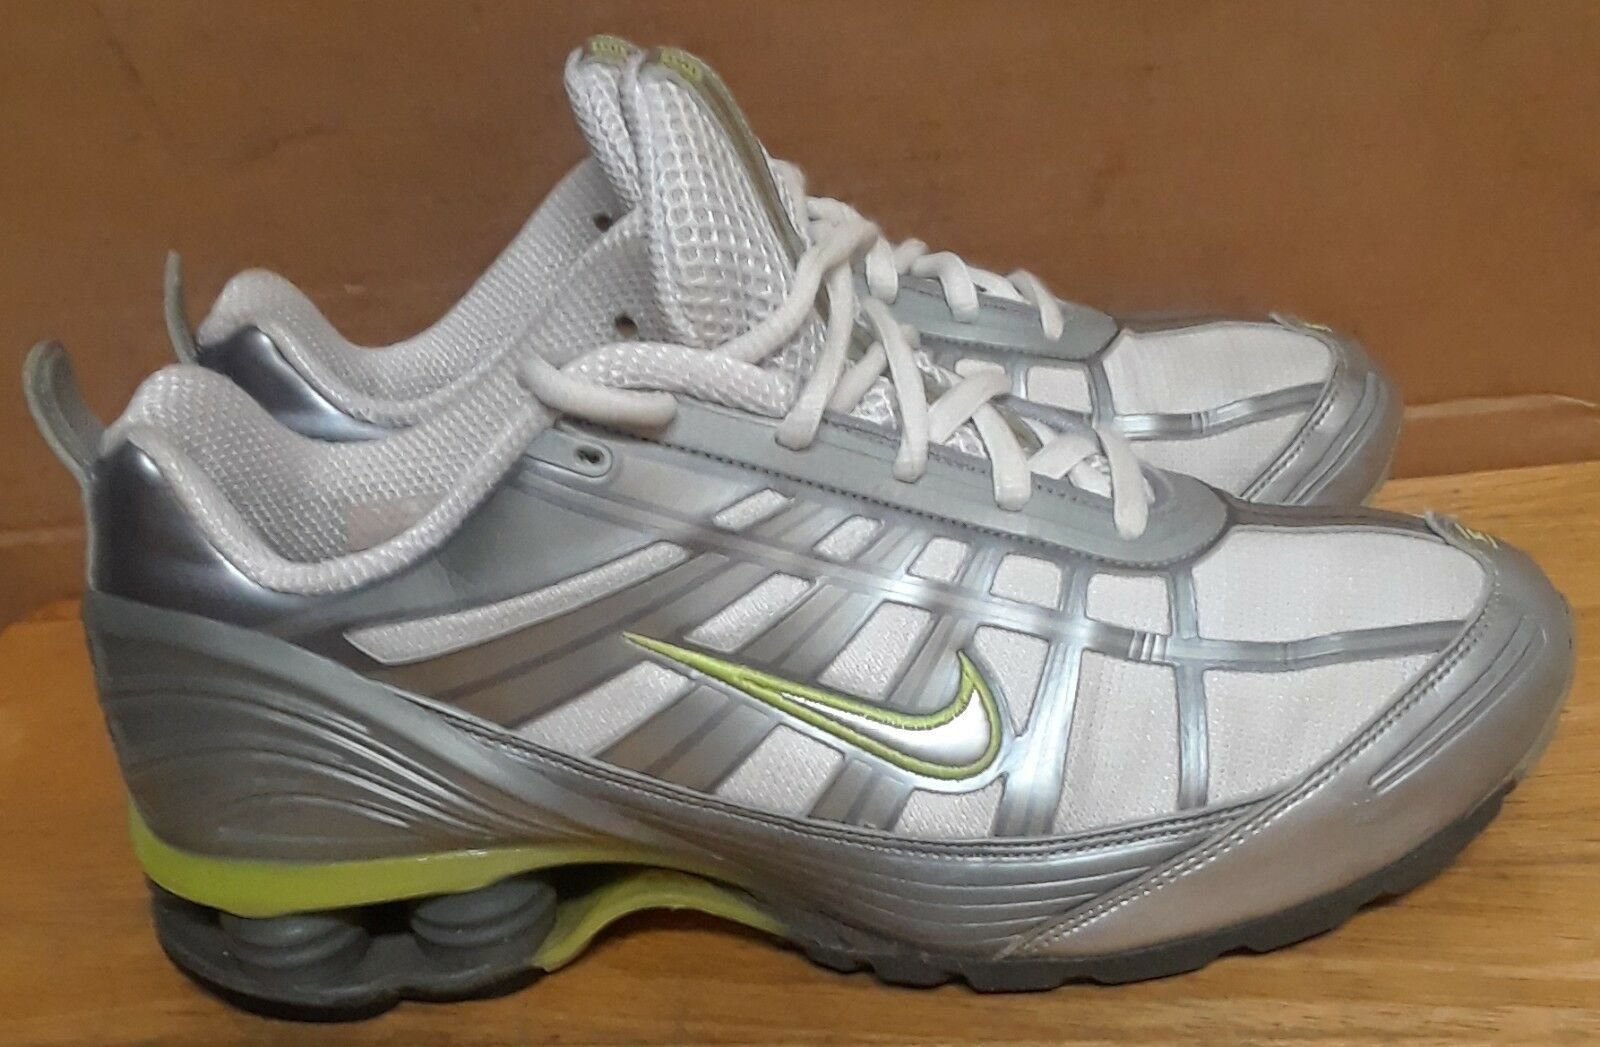 1db9f107d11ac NIKE SHOX Tuned For Women 312522-101 women s athletic athletic athletic shoe  size 8.5 3391dd